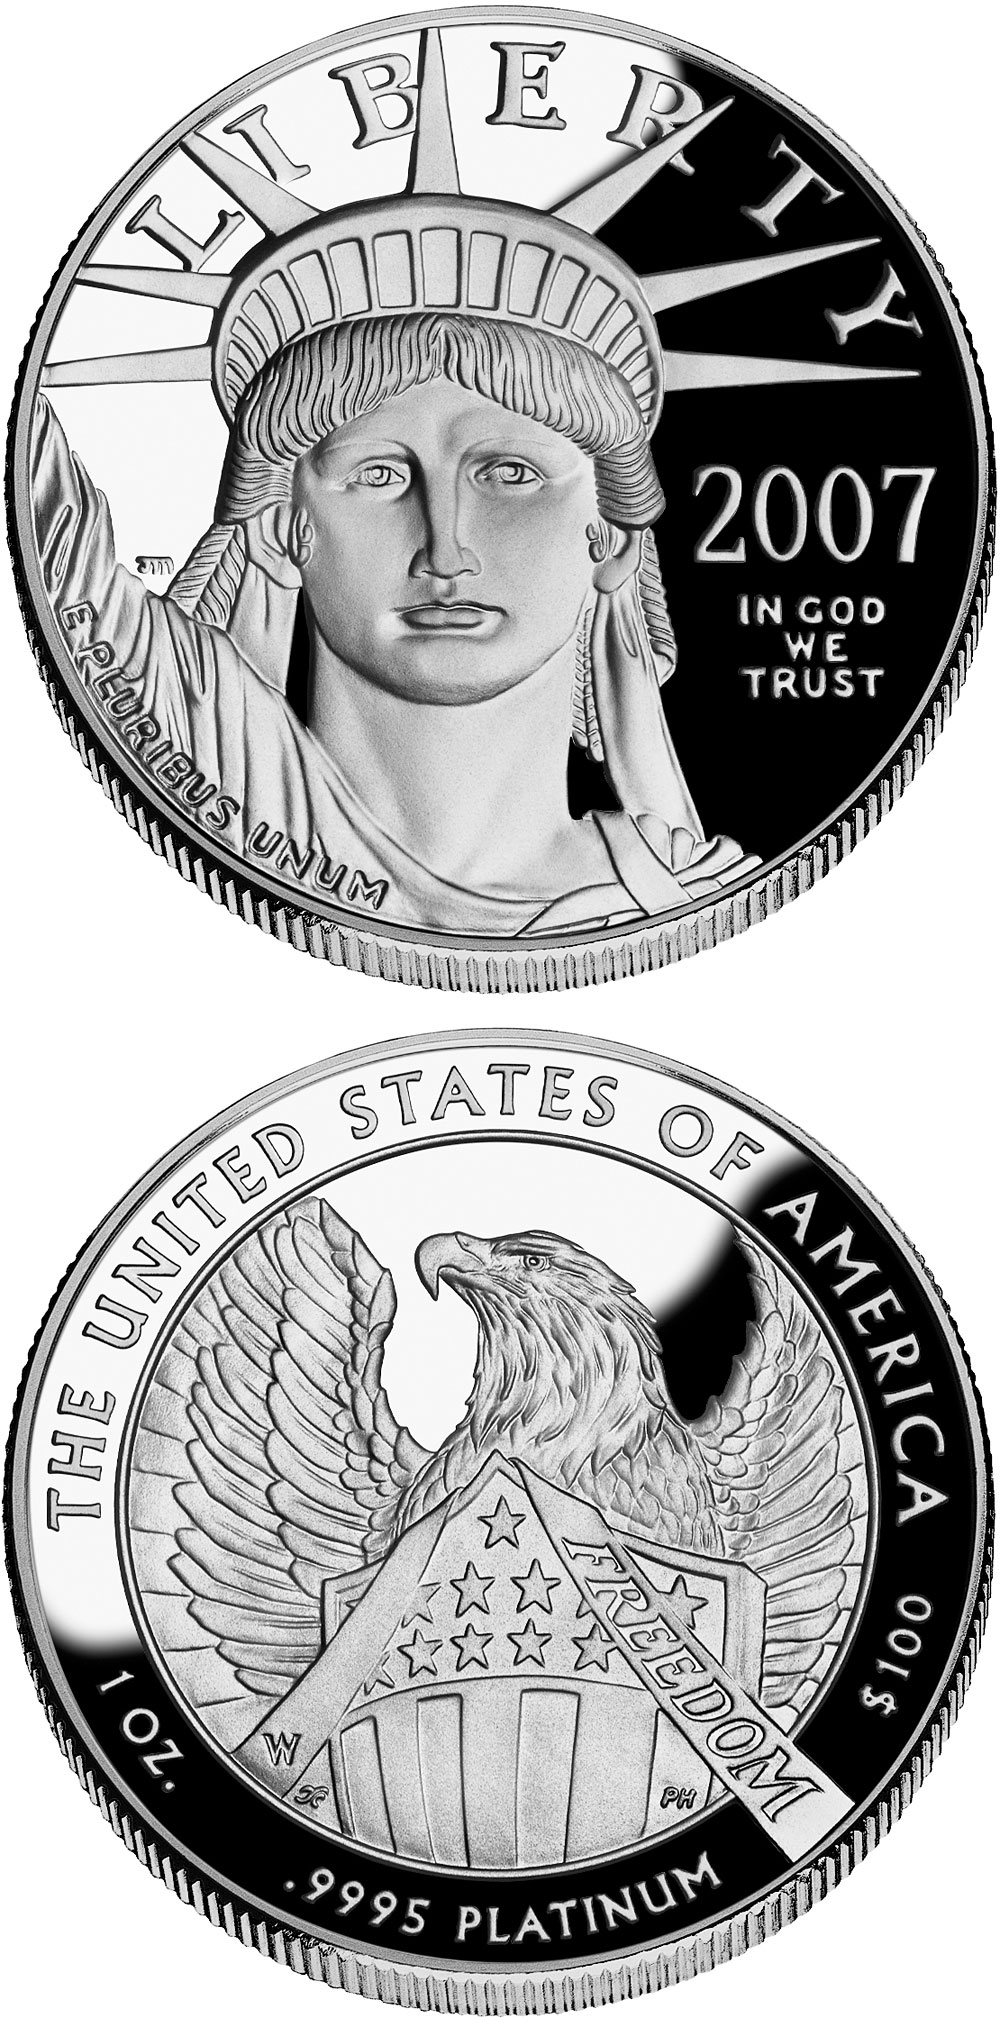 Image of 100 dollars coin - American Eagle Platinum One Ounce Proof Coin | USA 2007